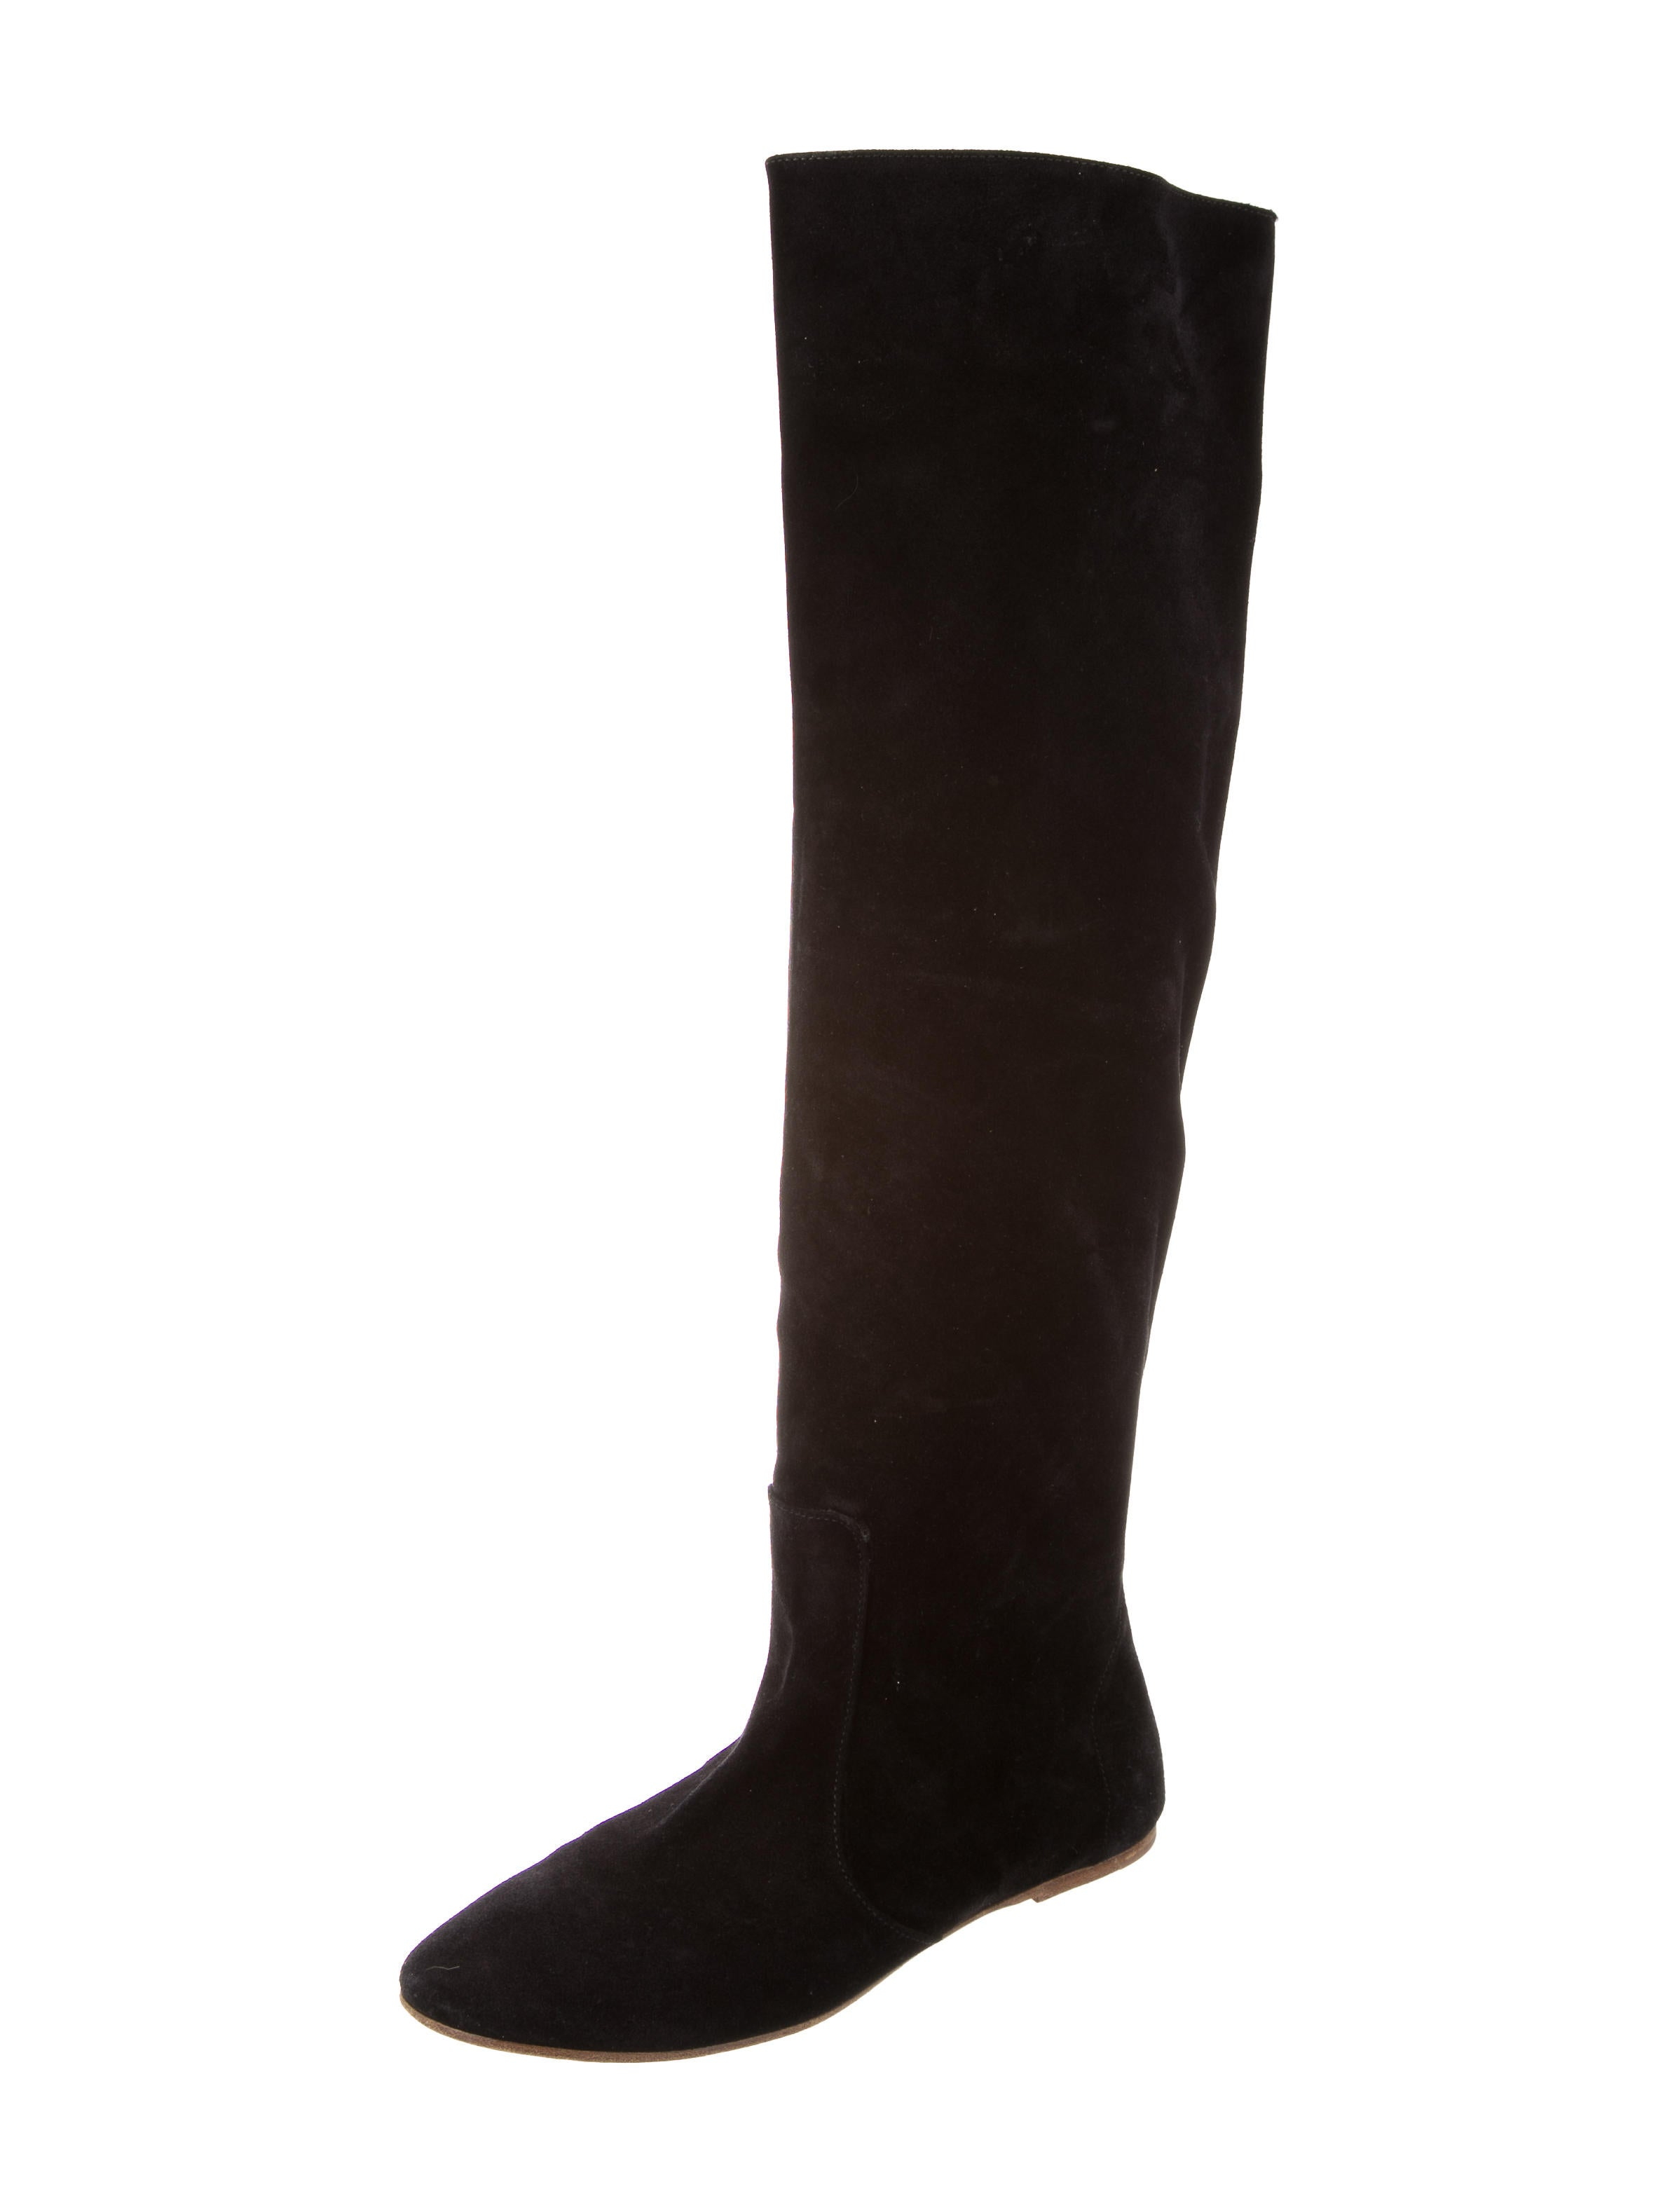 marant suede knee high boots shoes isa39955